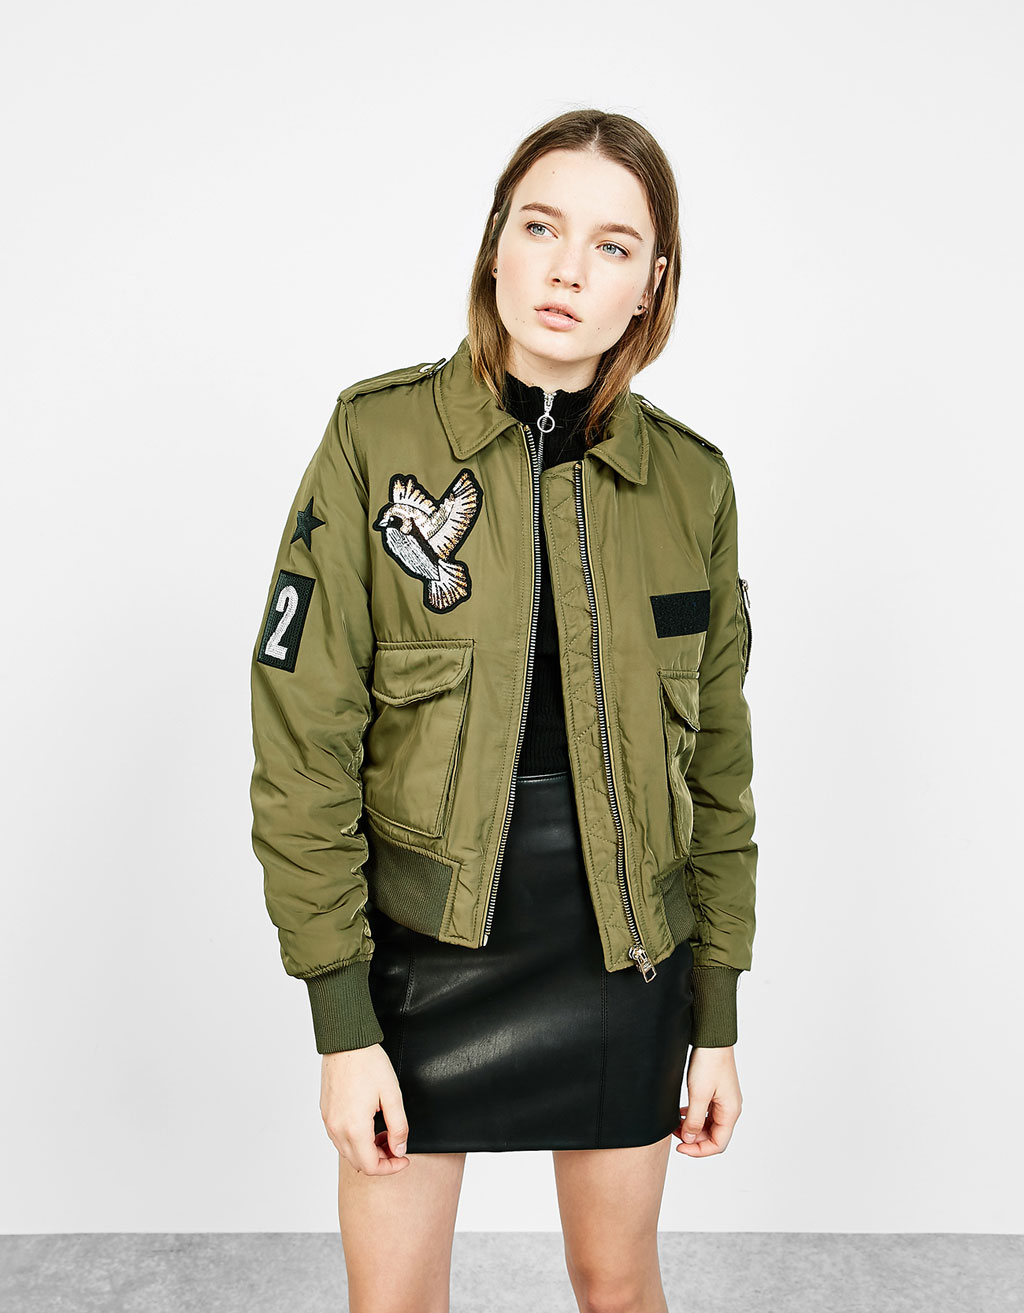 Nylon aviator jacket with patches